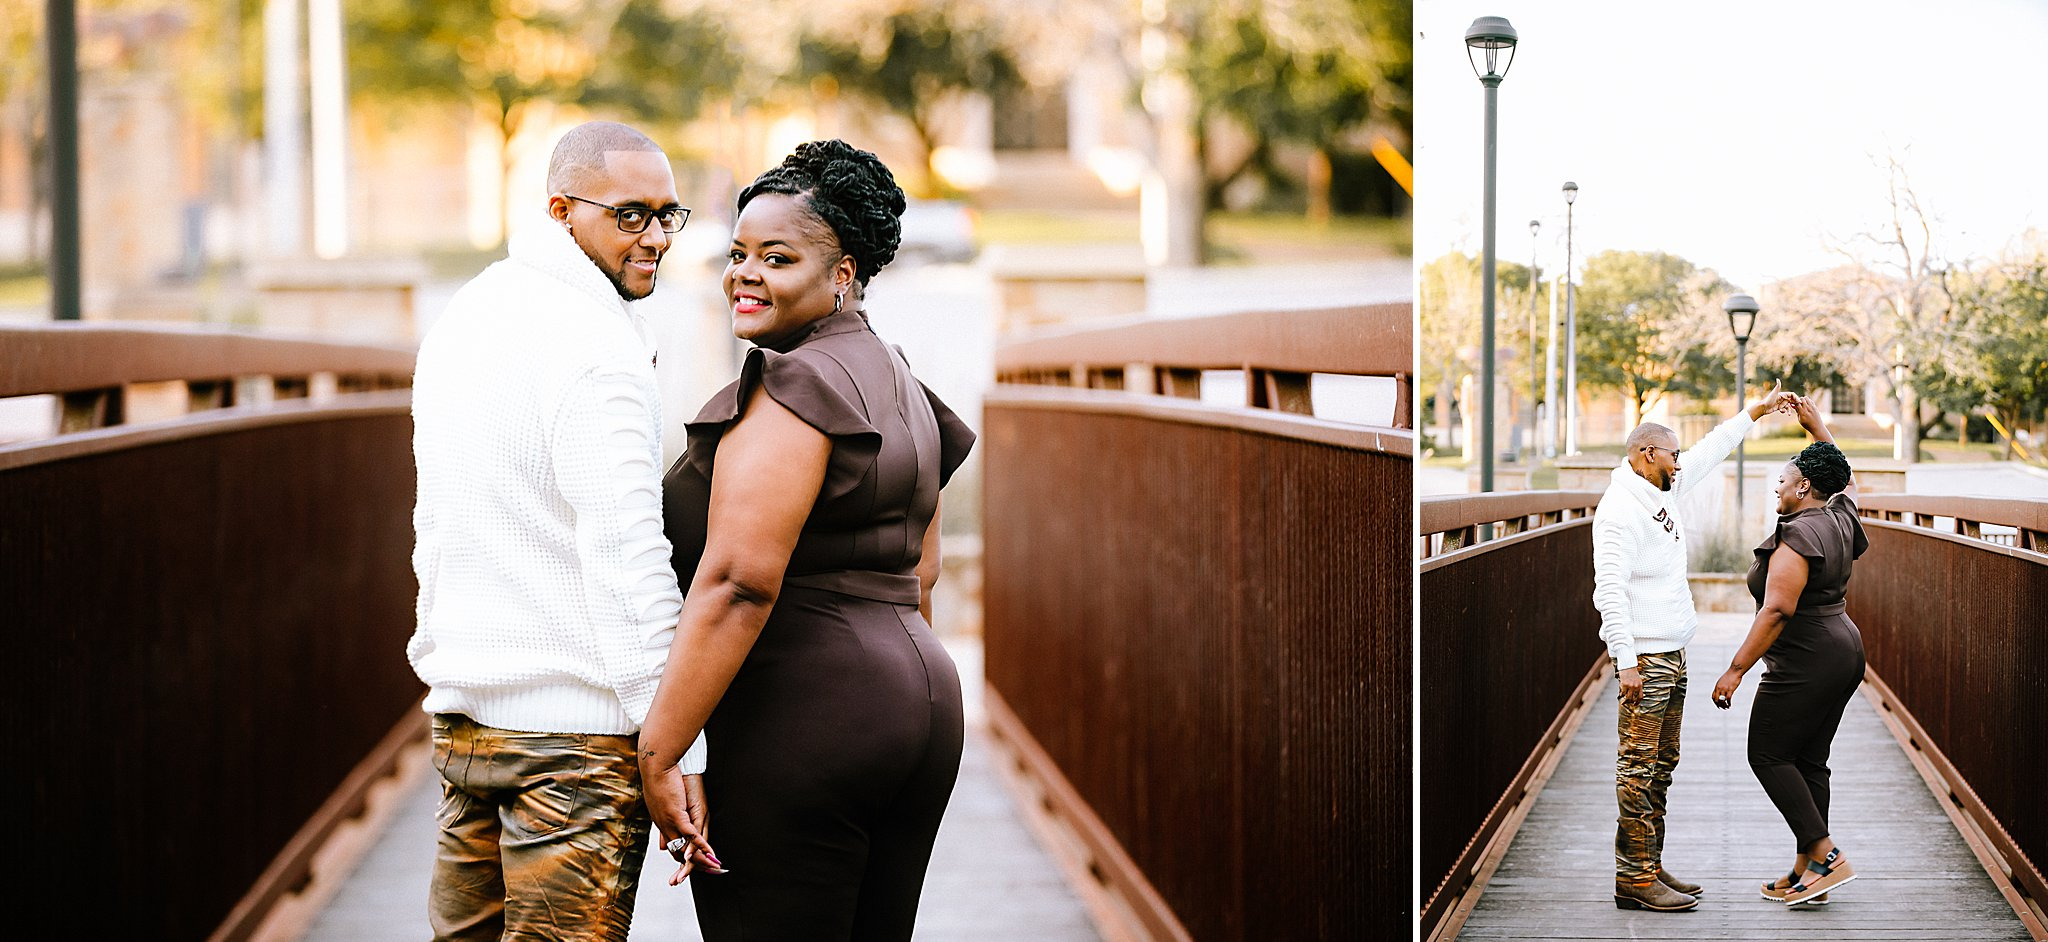 Carly-Barton-Photography-Texas-Engagement-Session-San-Antonio-Photos_0031.jpg